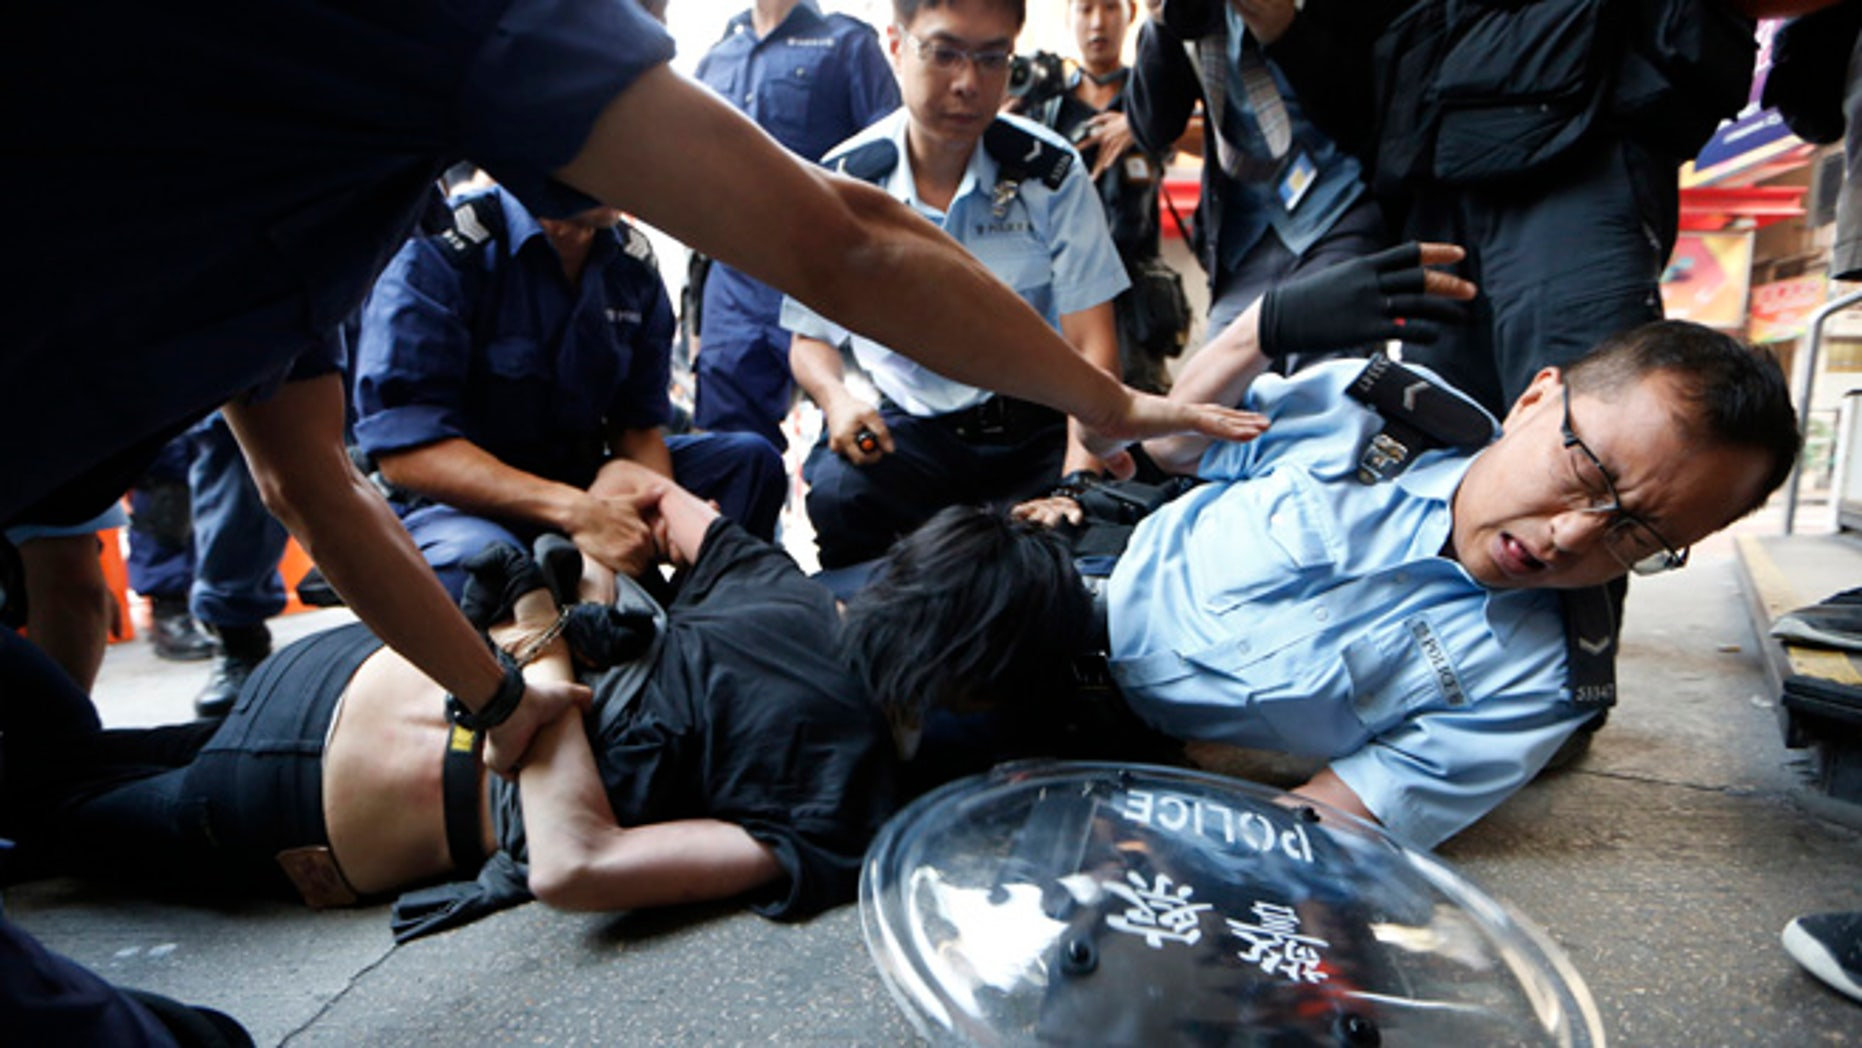 Oct. 17, 2014: A pro-democracy protester is arrested by riot police after police moved in the occupied area by the protesters in the Mong Kok district of Hong Kong. Riot police moved in on a Hong Kong pro-democracy protest zone in a dawn raid on Friday, taking down barricades, tents and canopies that have blocked key streets for more than two weeks.